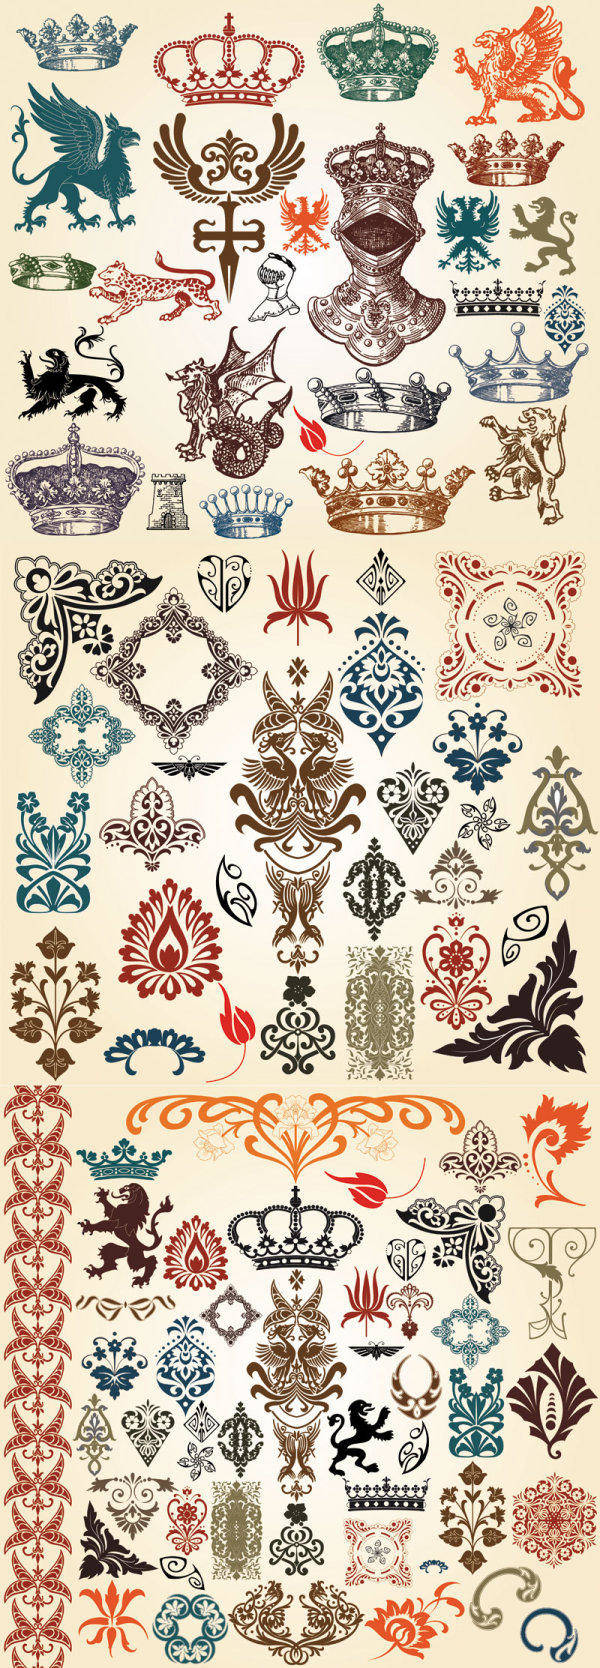 free vector European Classic Pattern Totem Vector European-style Lace Crown